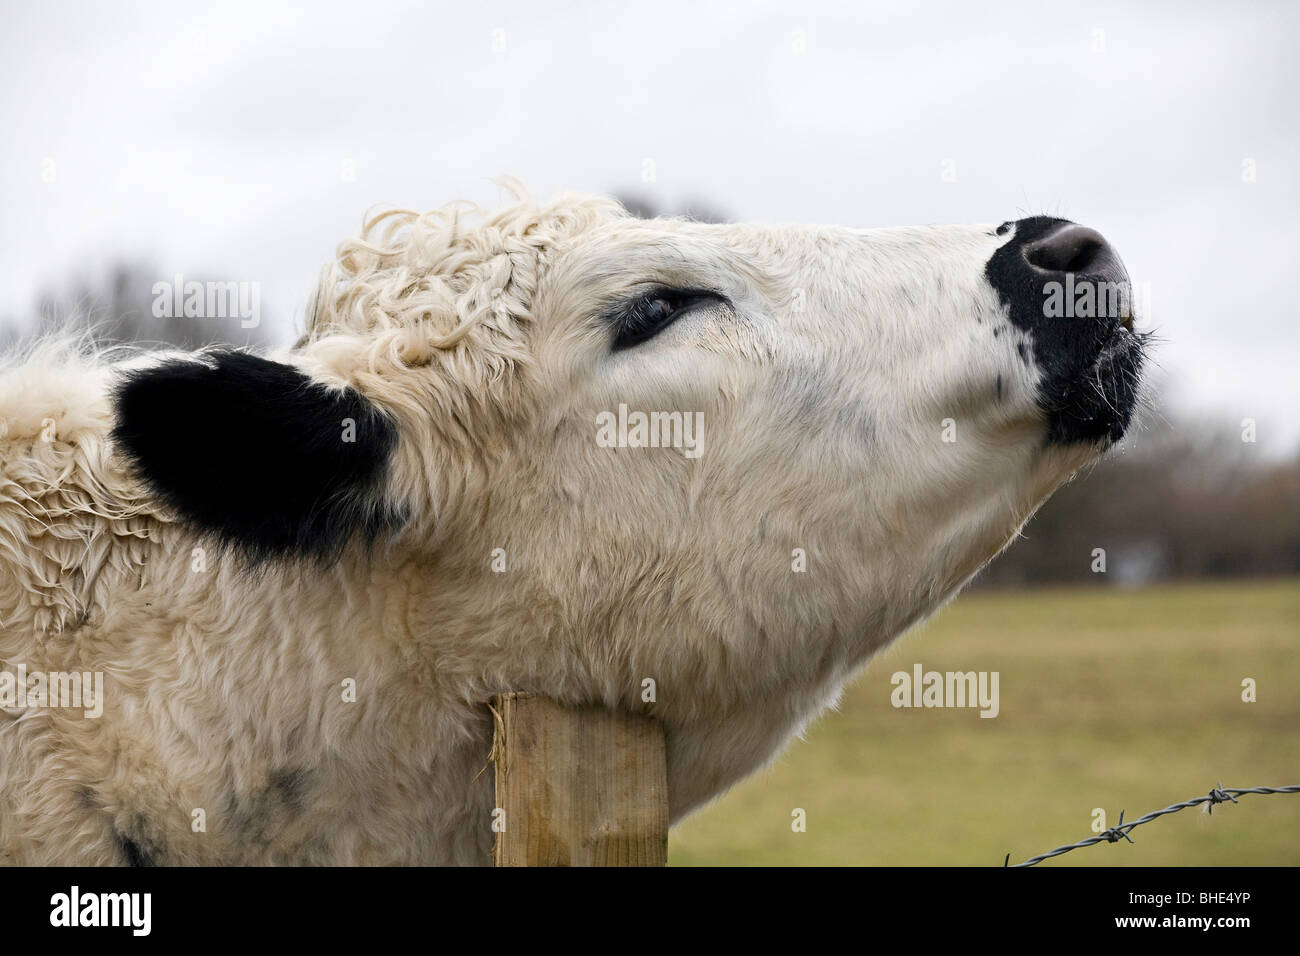 British White cow scratching on fence post - Stock Image